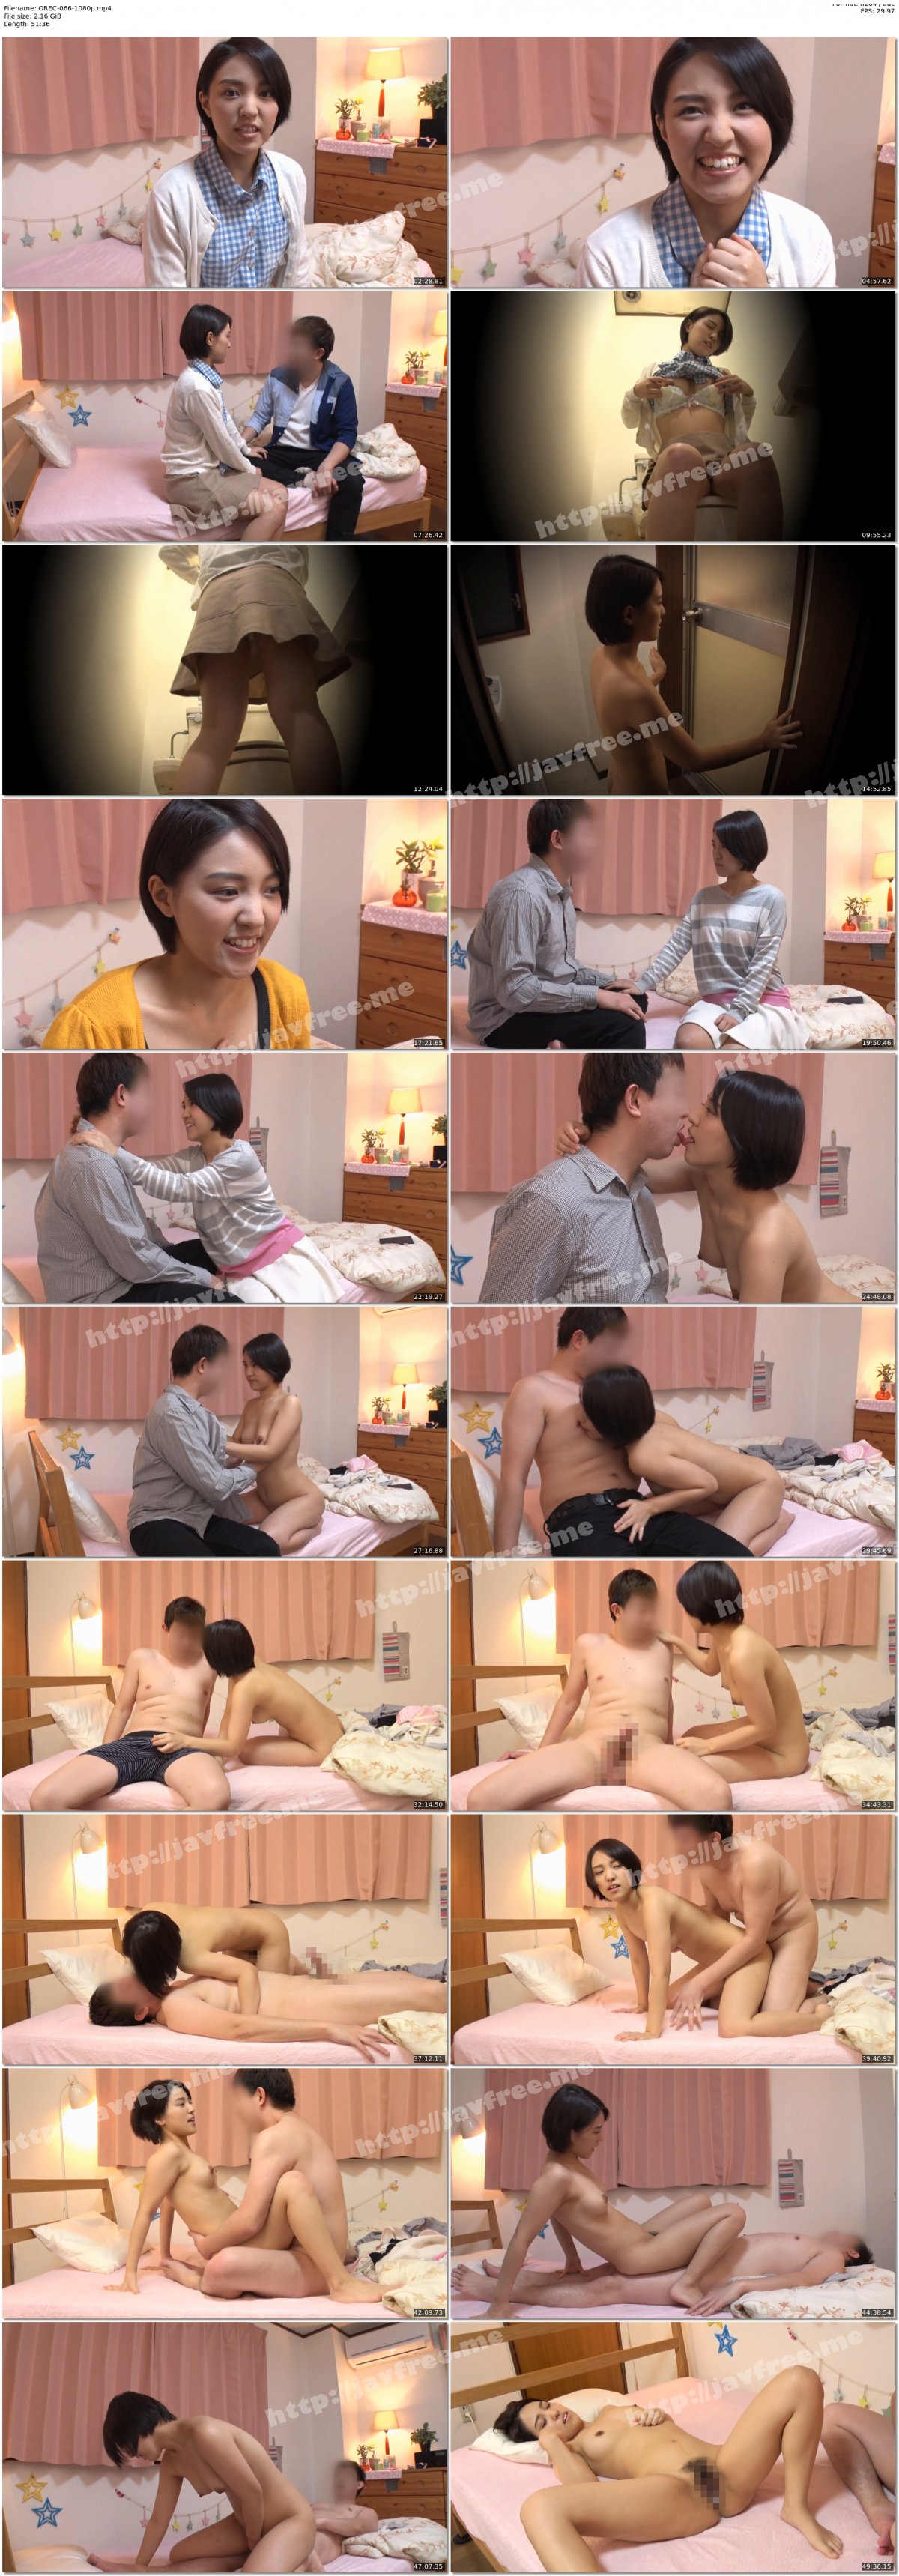 [HD][OREC-066] みお - image OREC-066-1080p on https://javfree.me